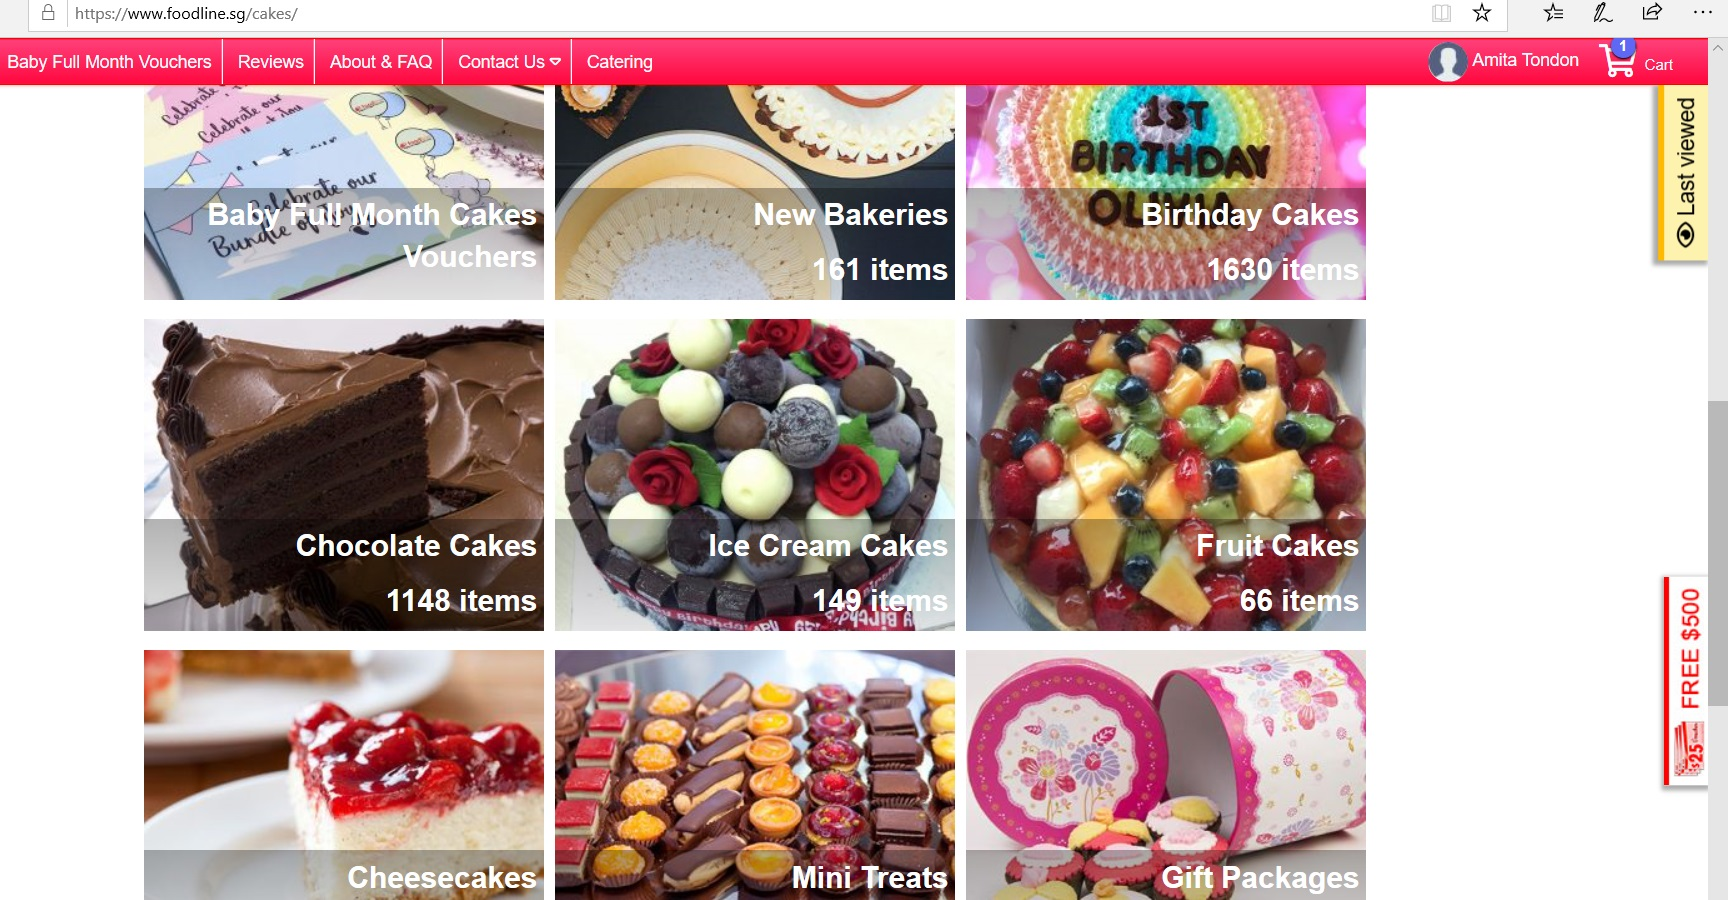 Online catalogue of cakes.